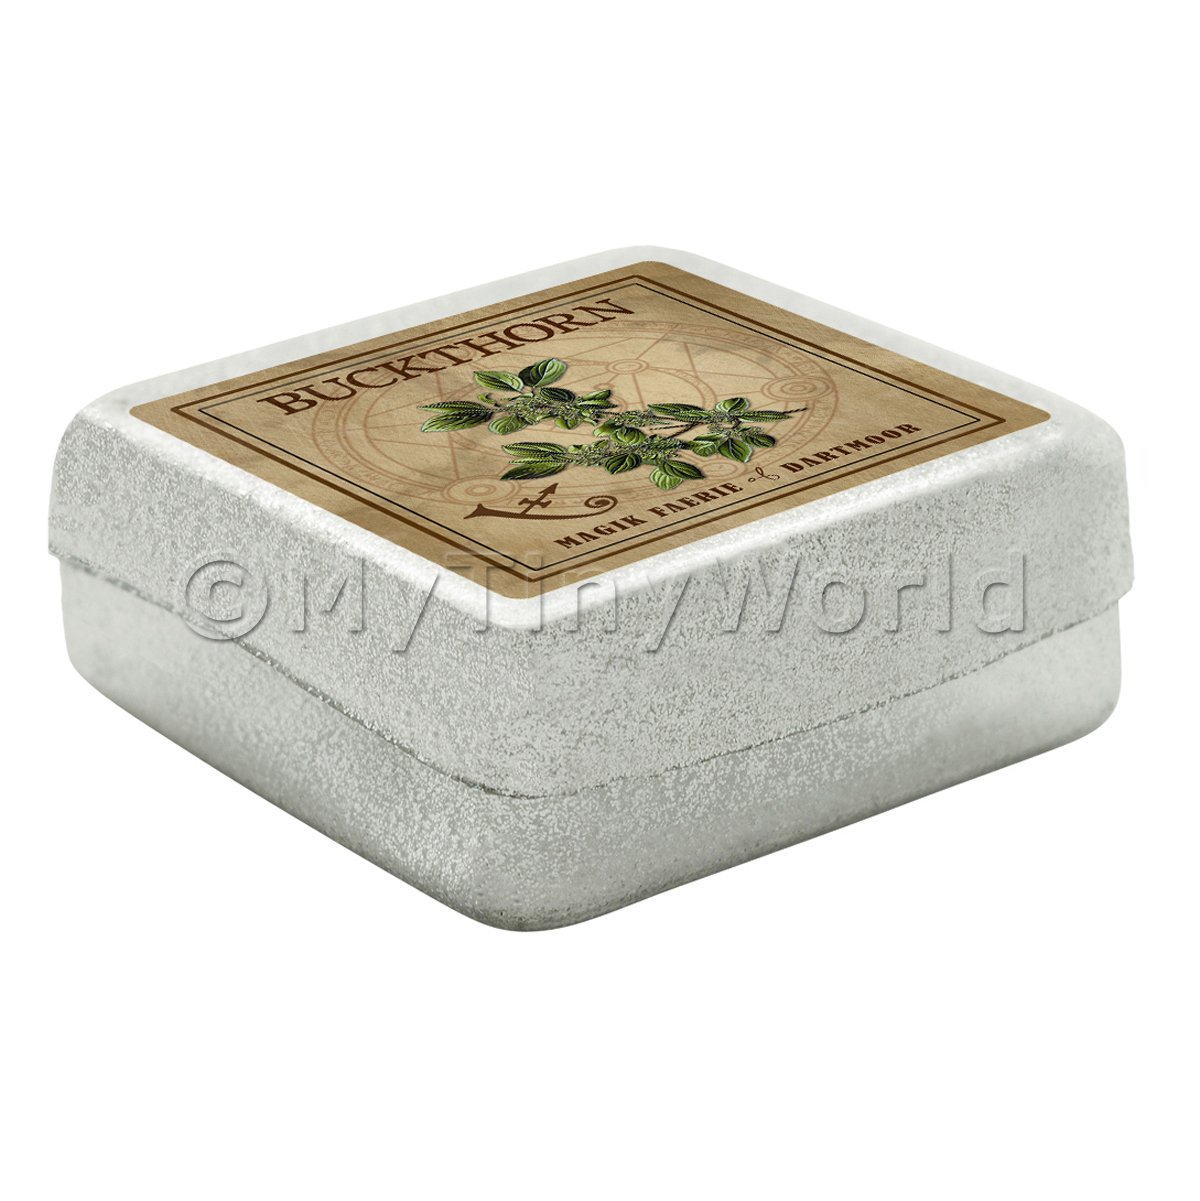 Dolls House Herbalist/Apothecary Buckthorn Square Herb Box